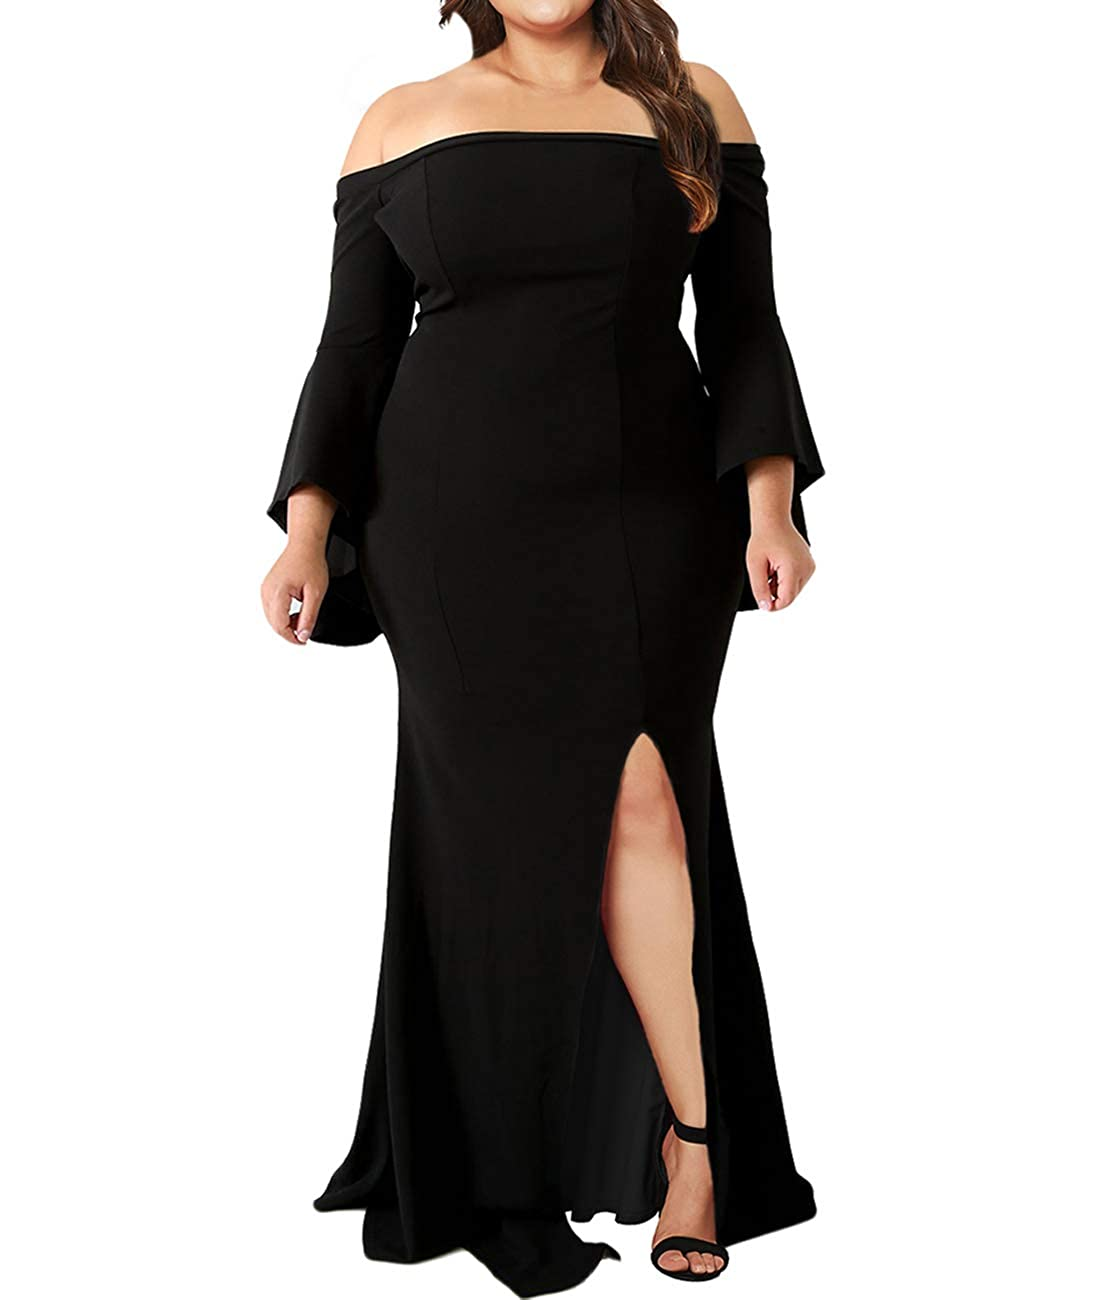 04a93439af6b Lalagen Women s Plus Size Off Shoulder Bodycon Long Evening Party Dress Gown  at Amazon Women s Clothing store